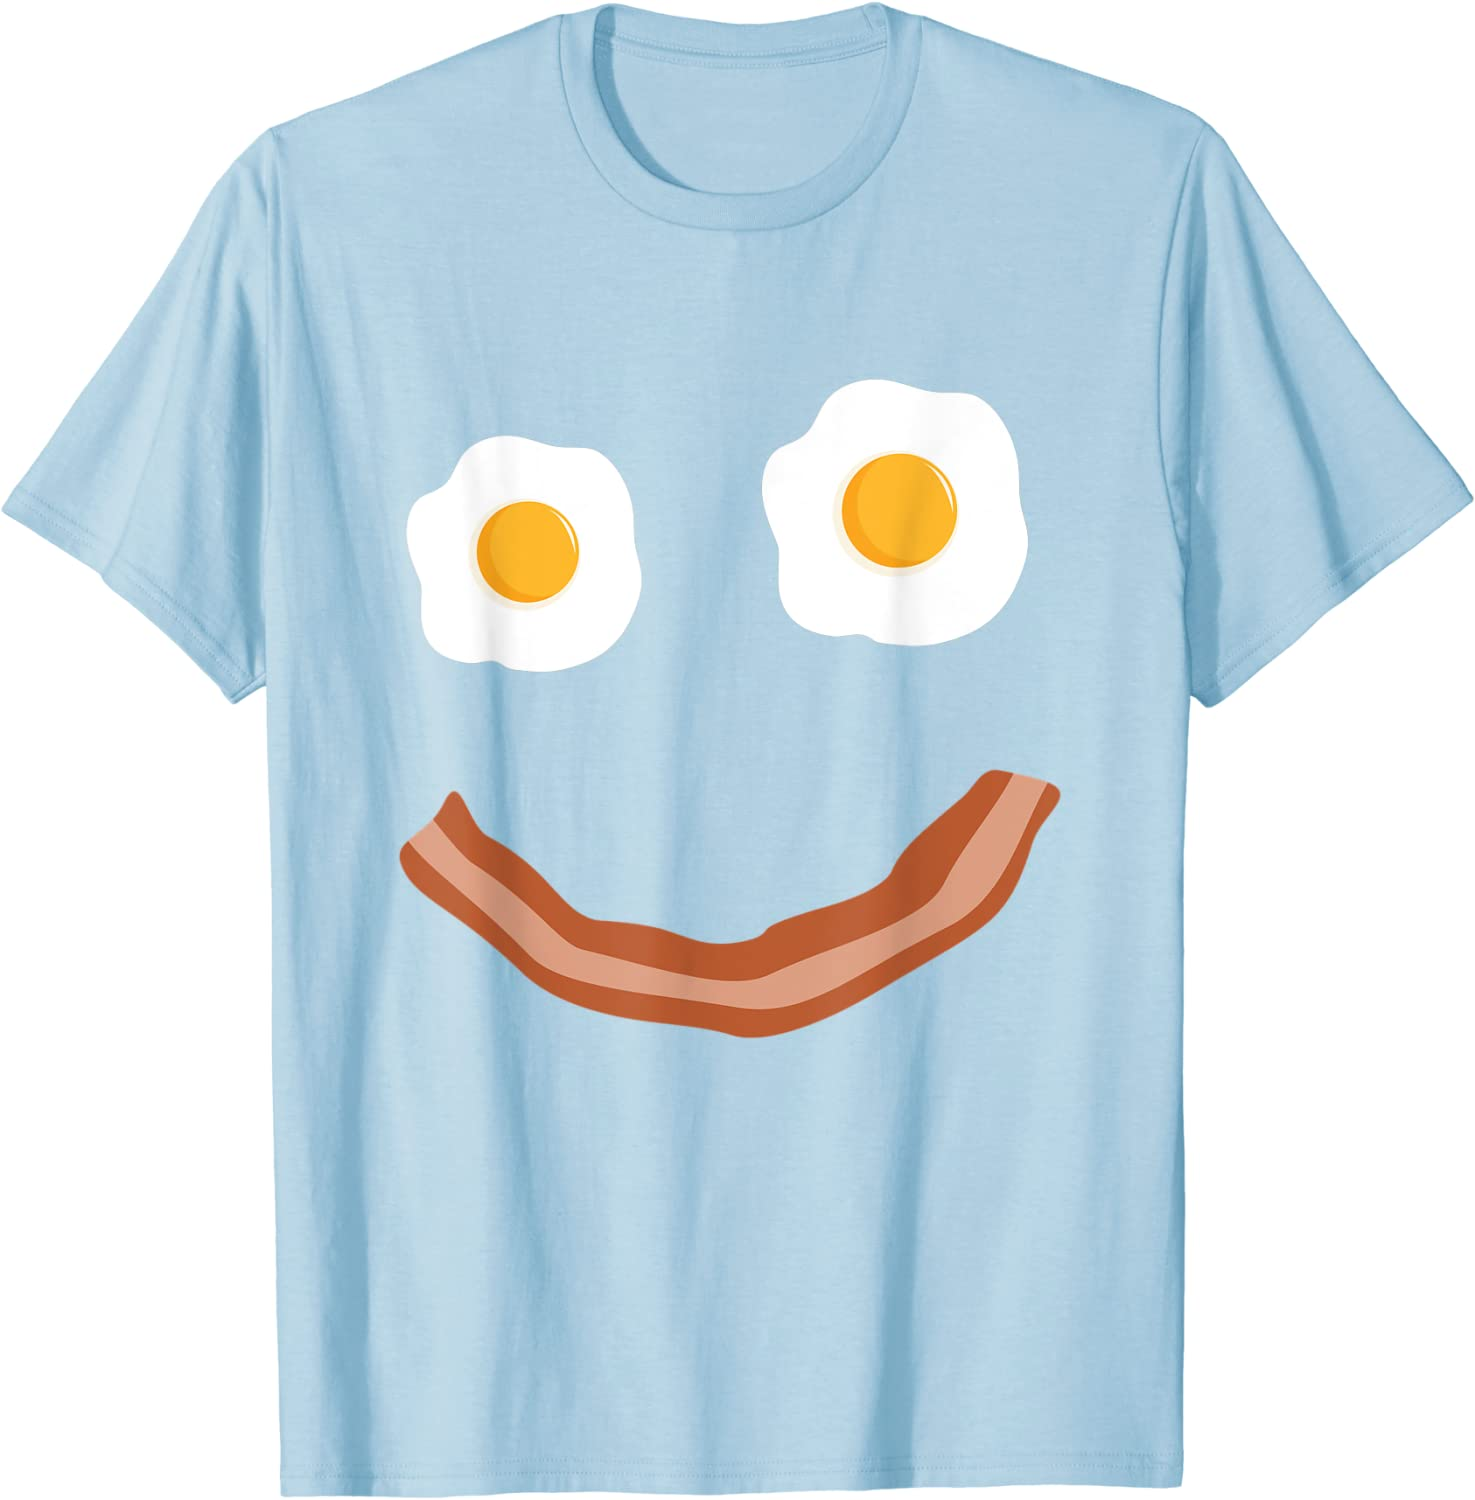 SMILE FACE BACON /& EGGS HAPPY BREAKFAST FOOD SHIRT ADULT SIZE EXTRA LARGE XL